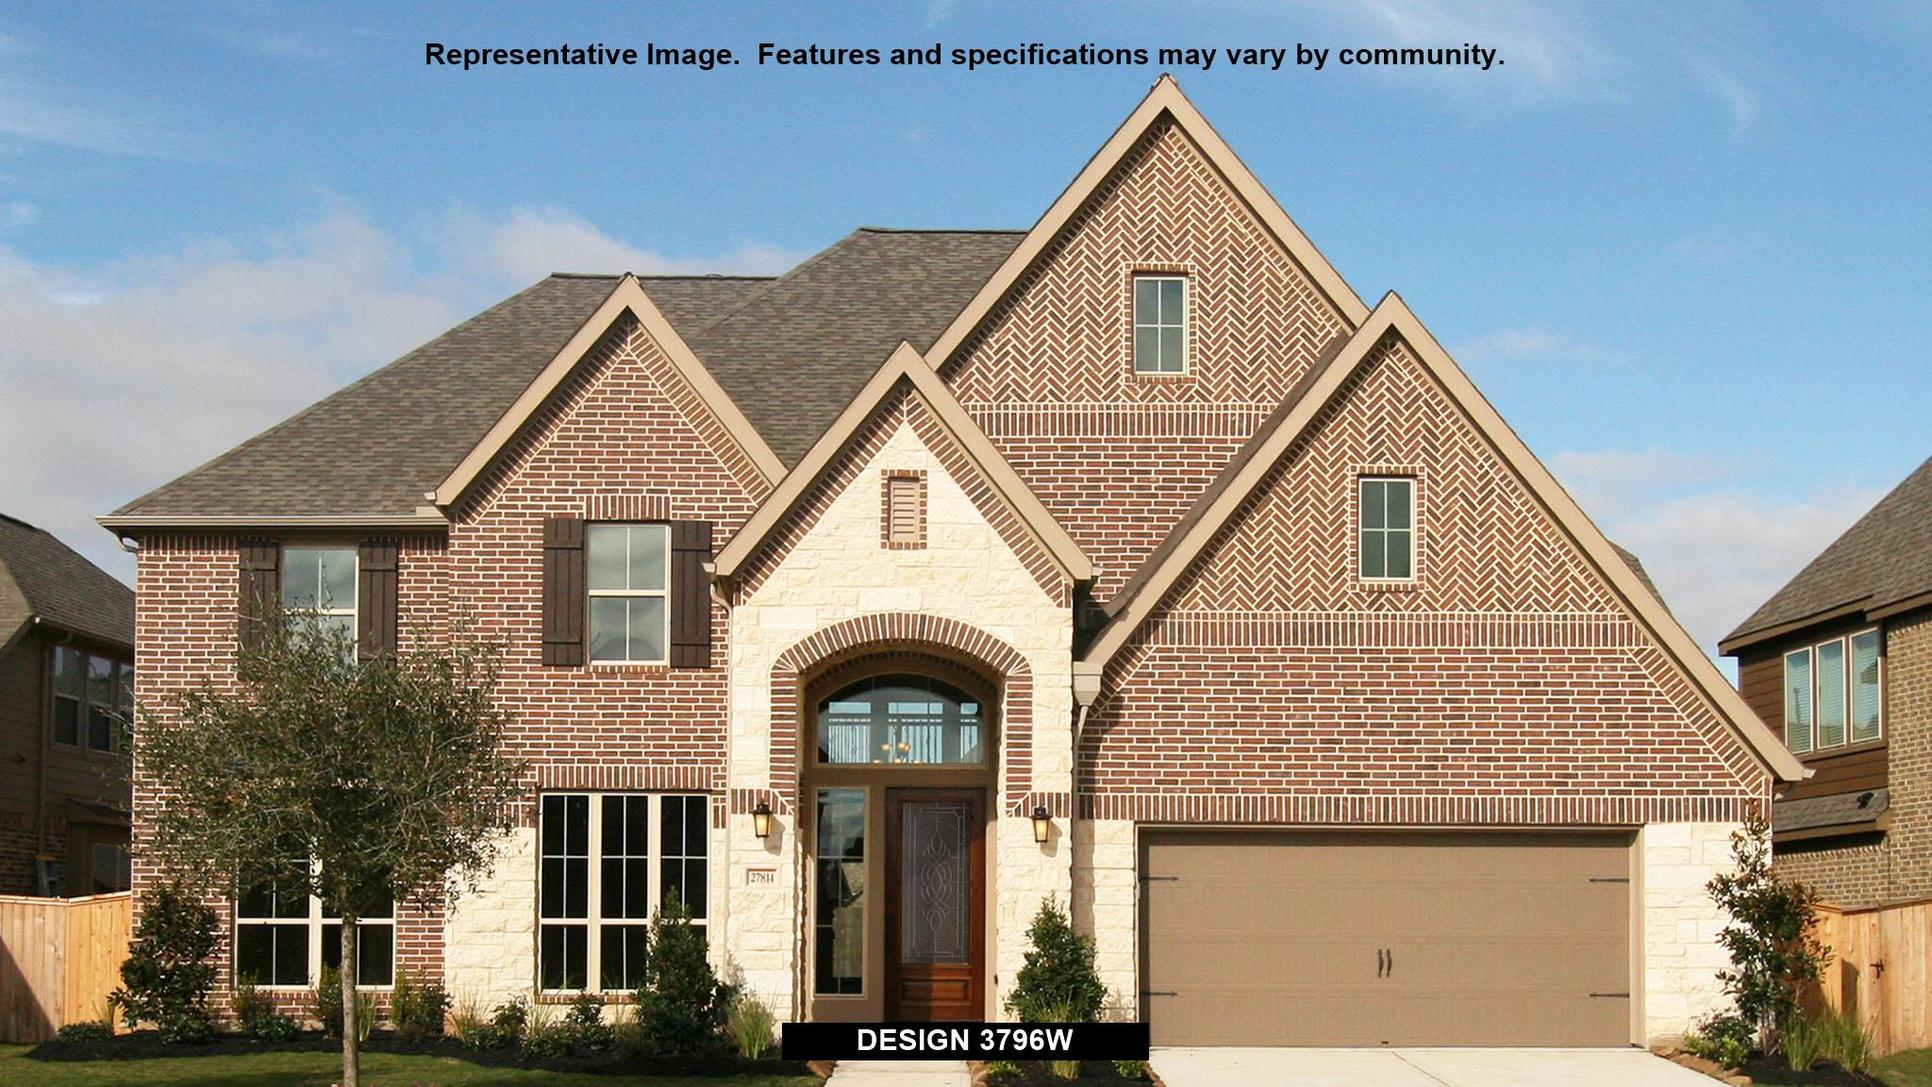 Plan 3796W:Representative photo.  Features and specifications may vary by community.